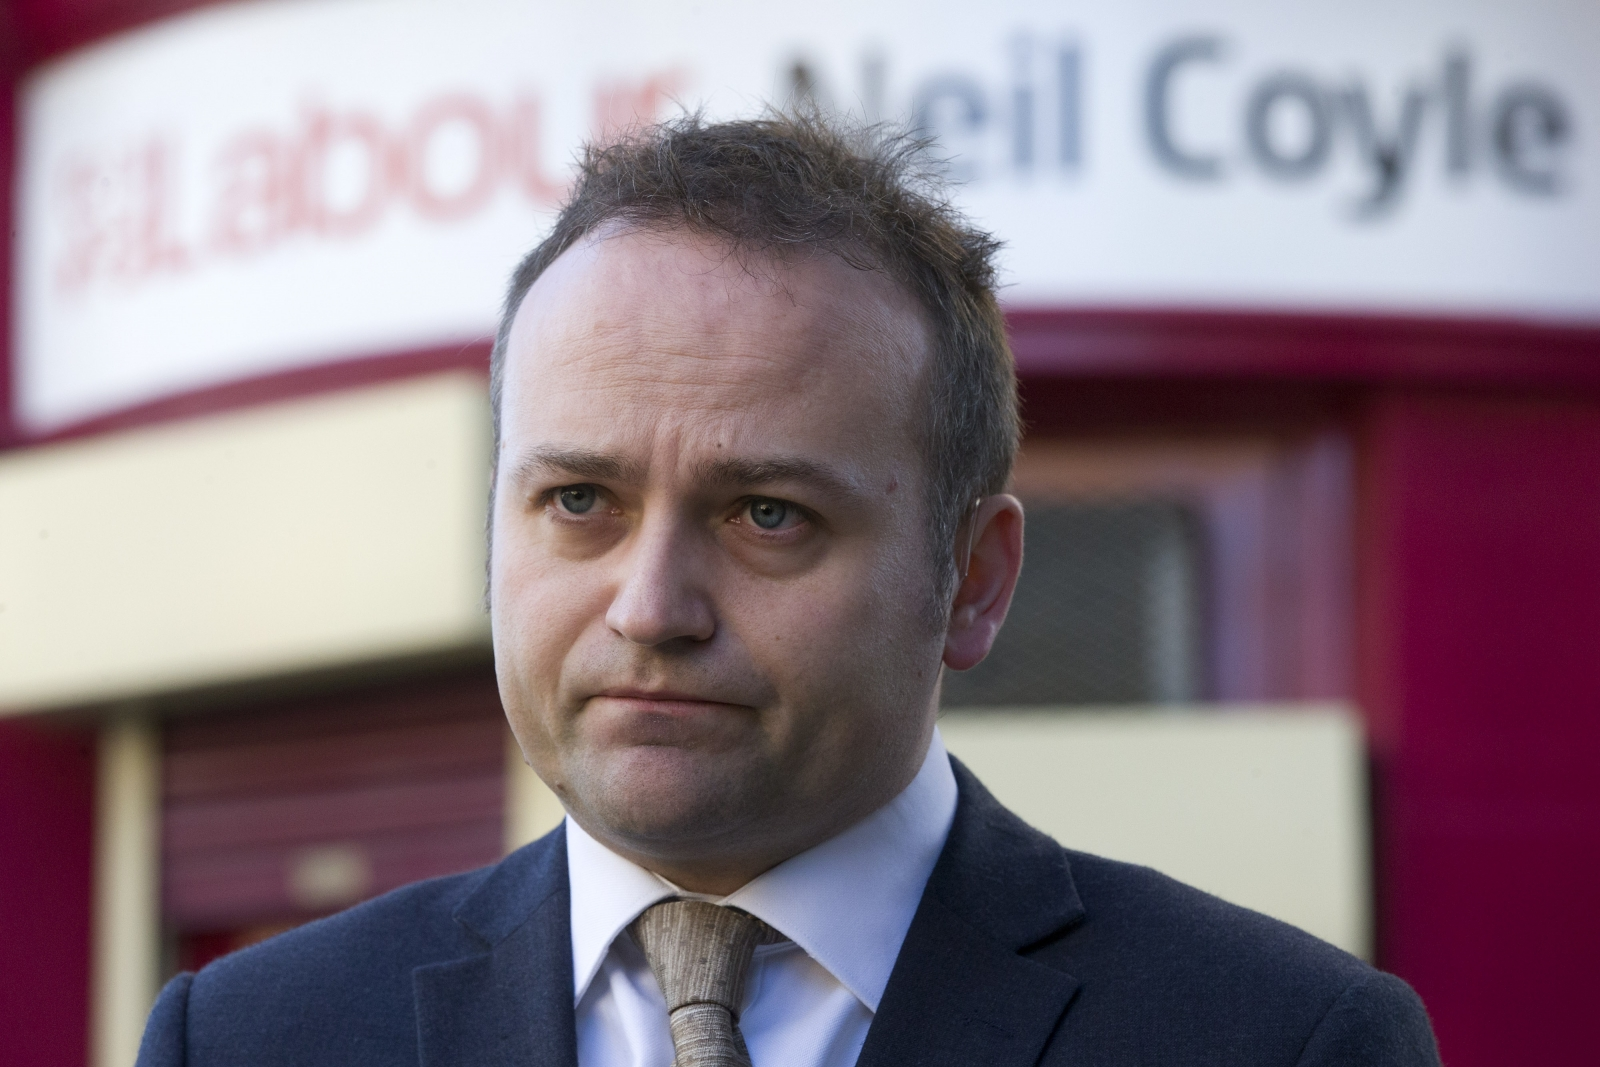 Neil Coyle Labour MP